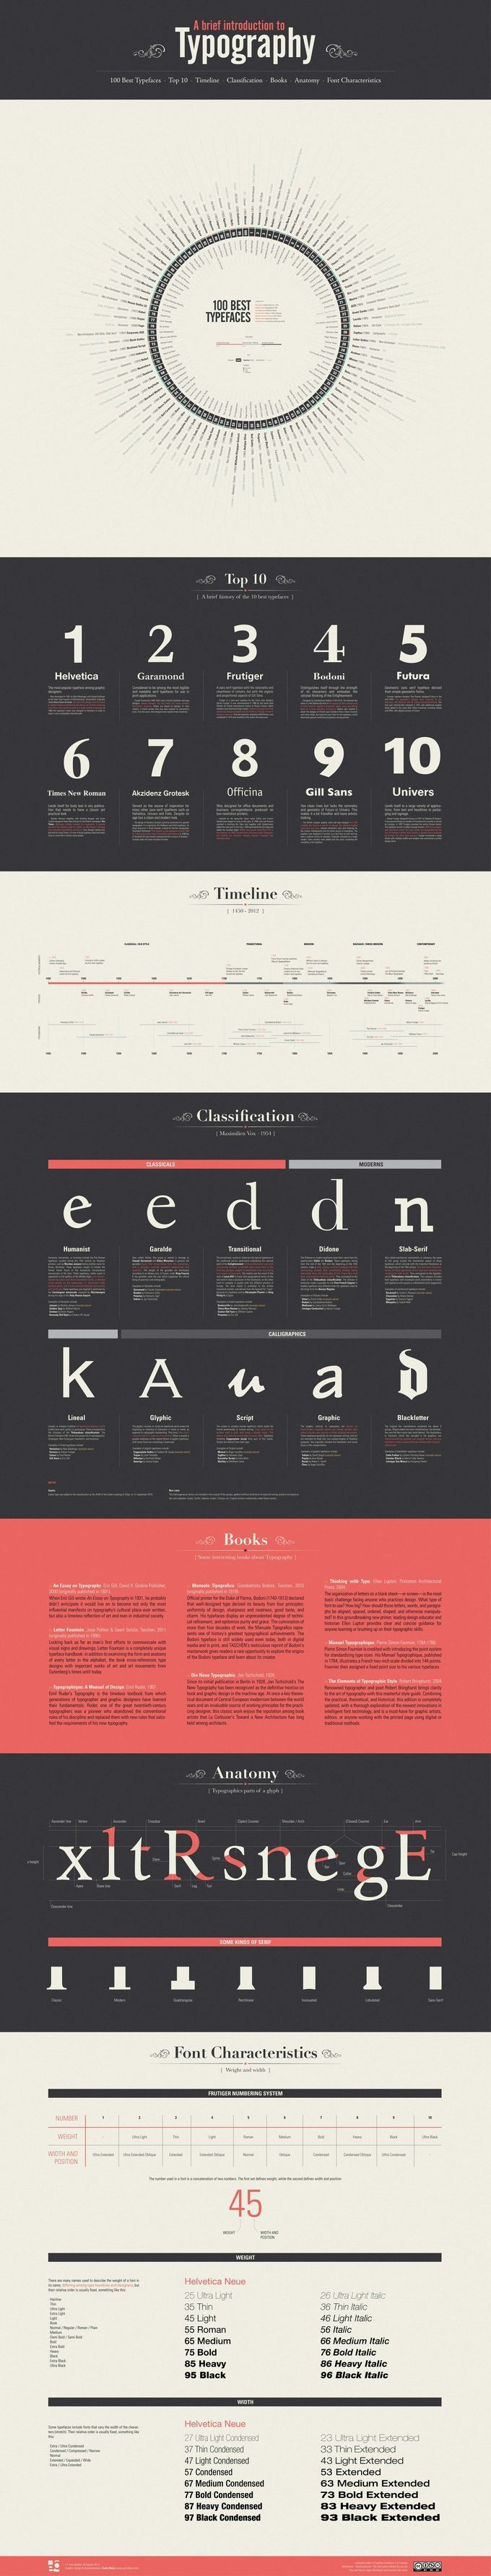 Introduction to typography.  | Ipseity Creative | ipseitycreative.com/ | 573-803-2875 |